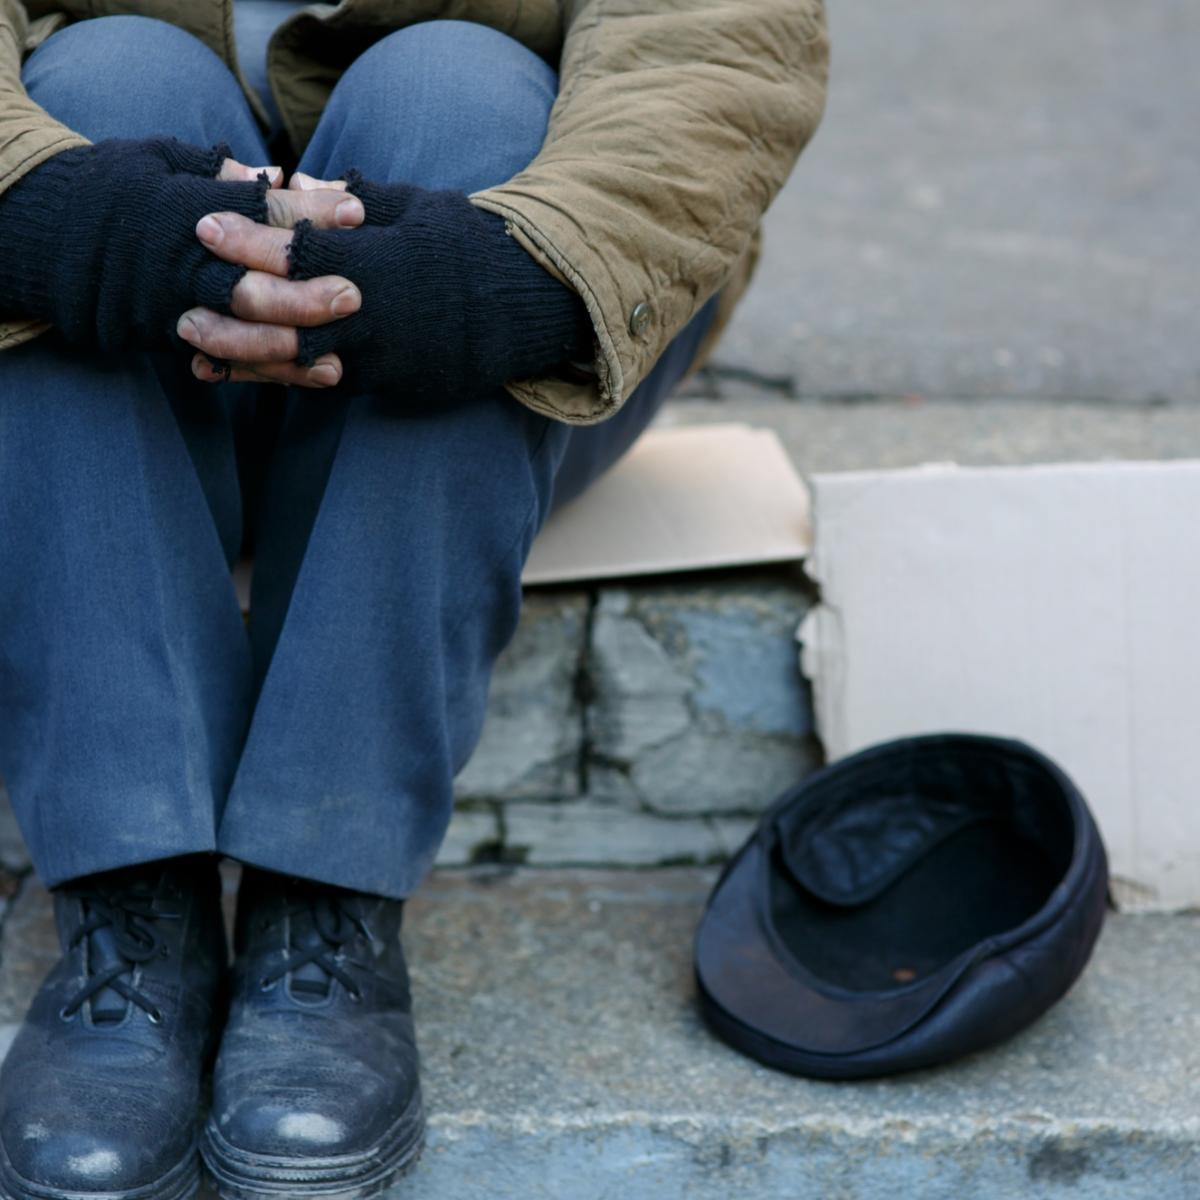 Homeless Individual stock photo